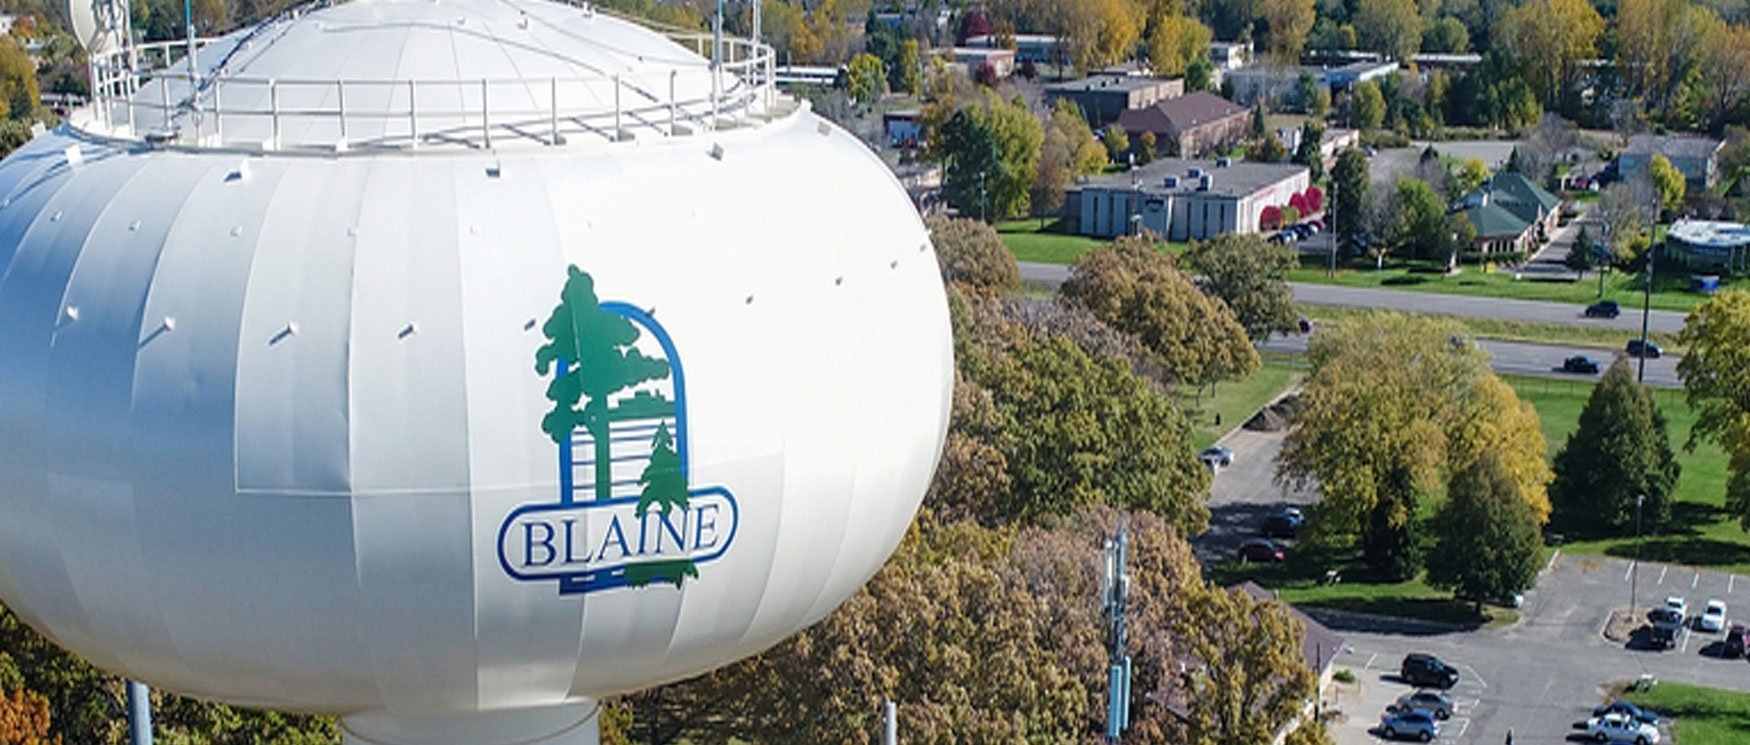 We offer residential and commercial plumbing services in the city of Blaine